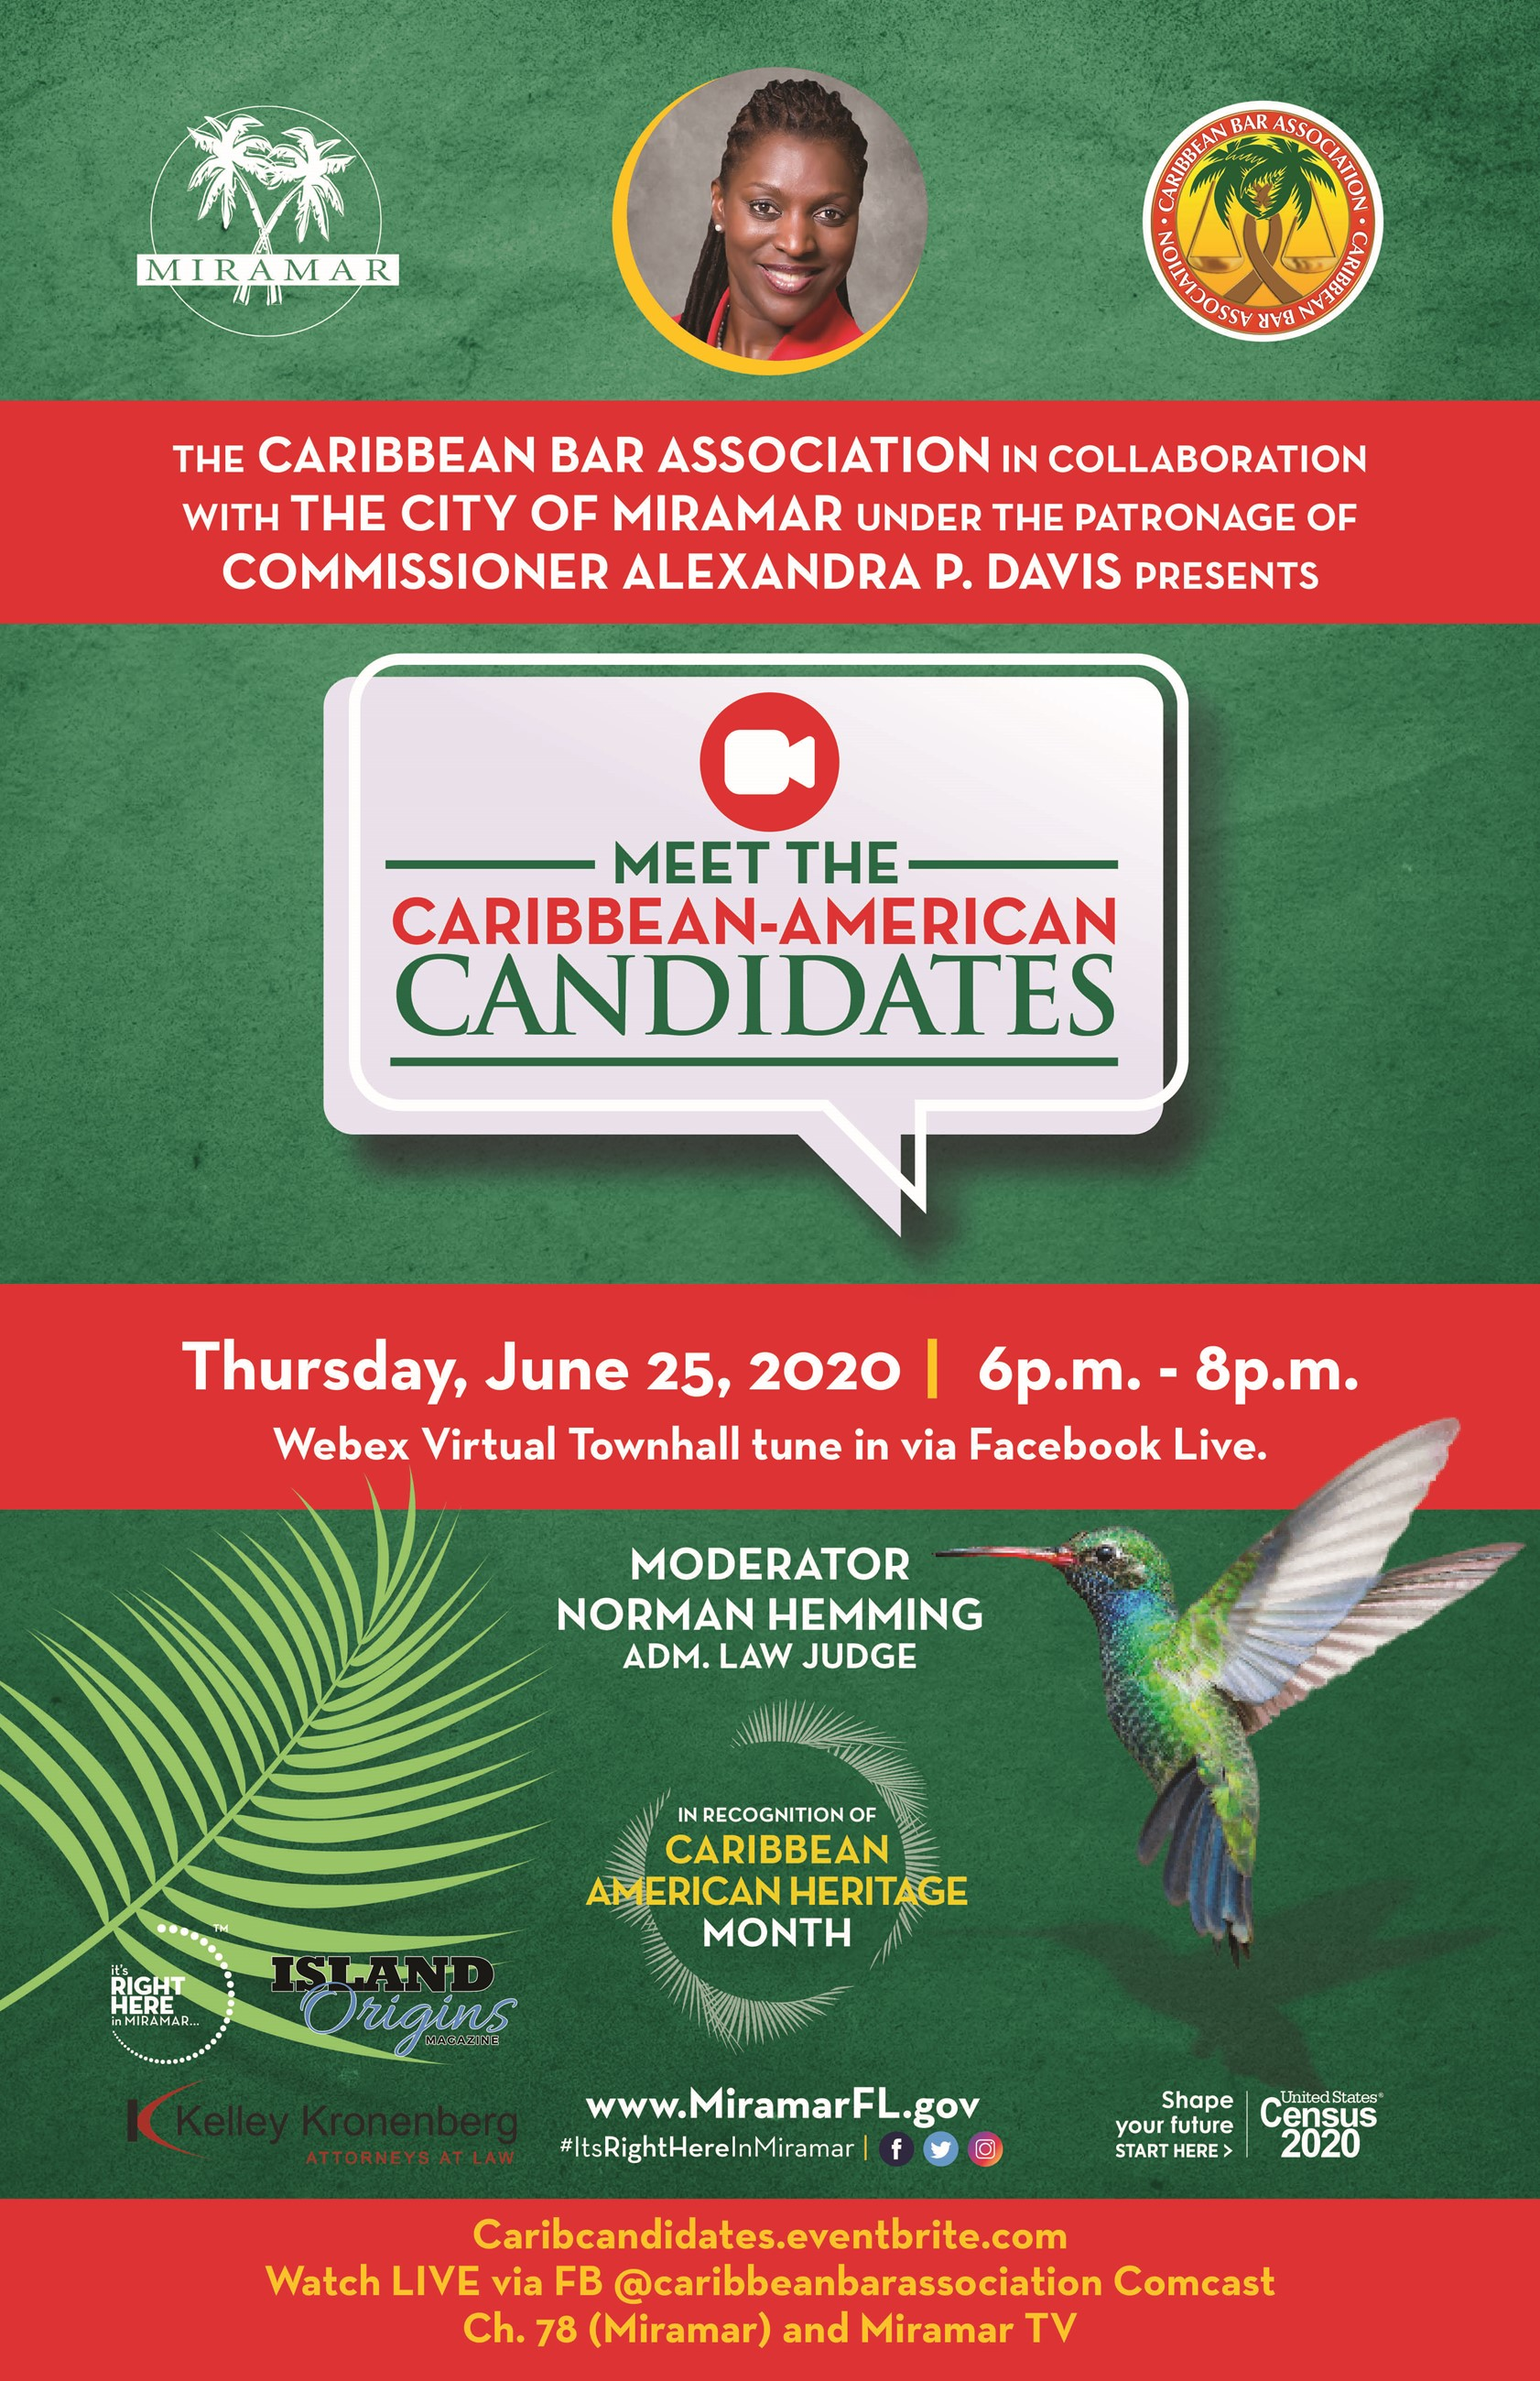 Commissioner Davis Meet the Candidates Forum